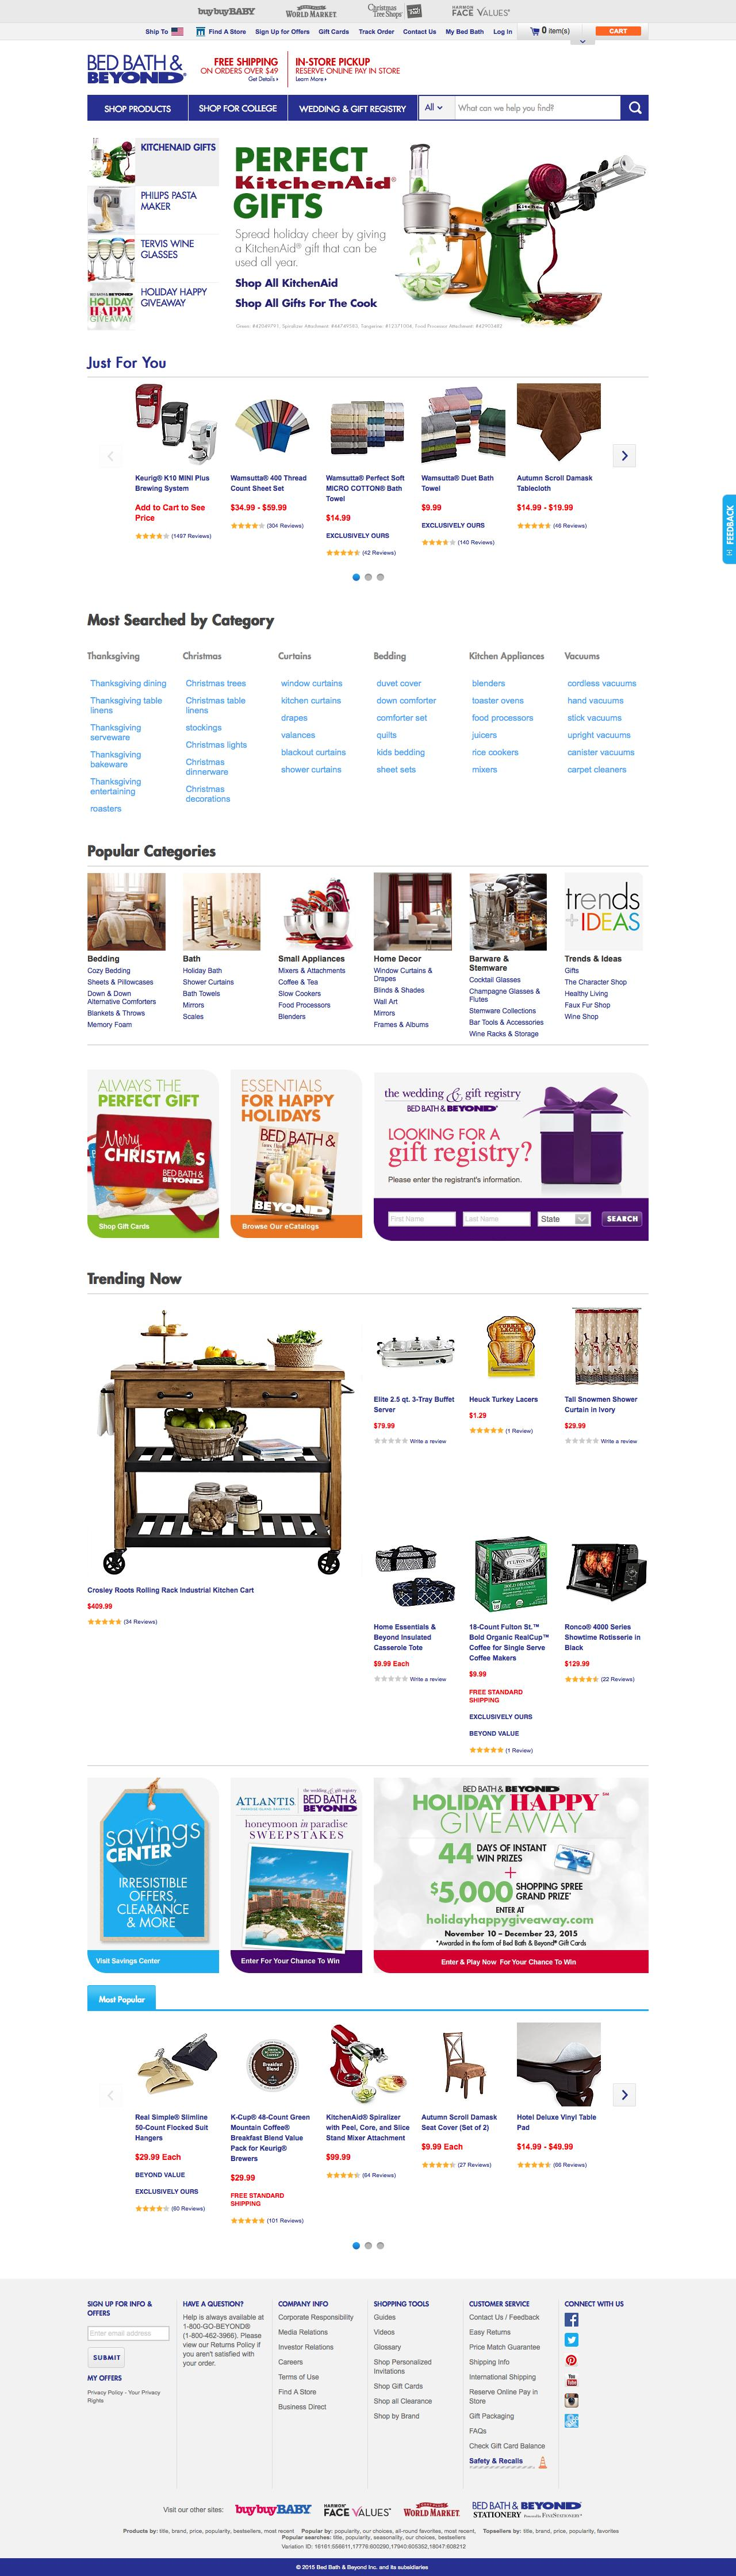 Screenshot of bedbathandbeyond.com - Bedding, Bath Towels, Cookware, Fine China, Bridal & Gift Registry  - BedBathandBeyond.com - captured Nov. 11, 2015